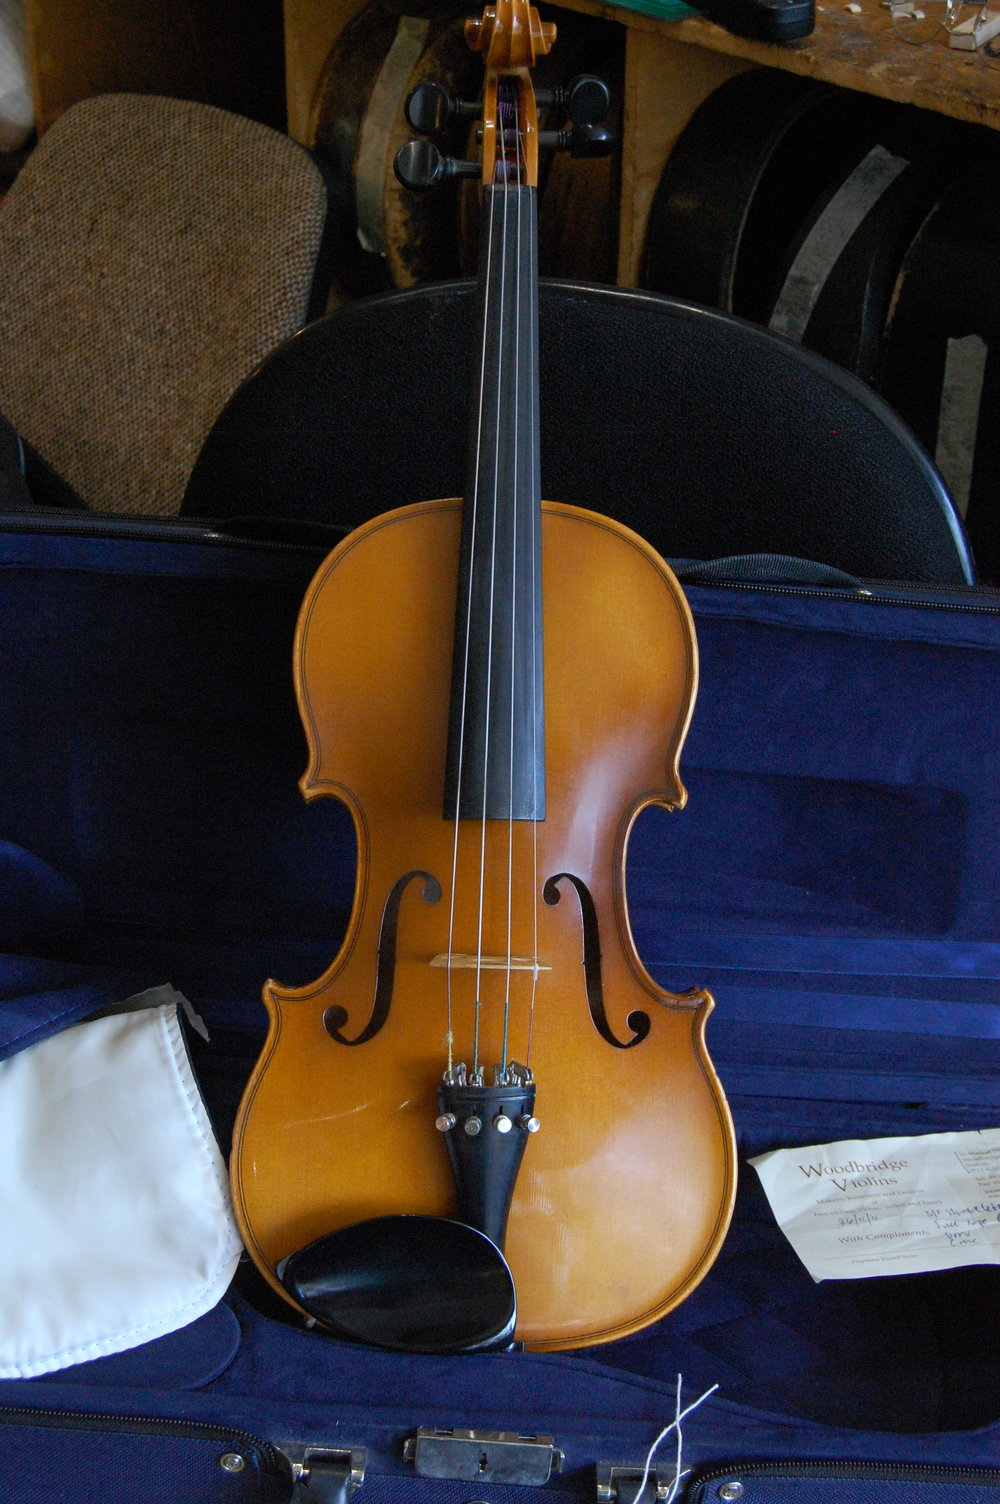 Full size German violin C1980 possibly by 'Hofner'. Sale price £700 including case CS006  Condition: Good  Tone: 4/5  Value for money: 4/5  Overall rating: 4/5